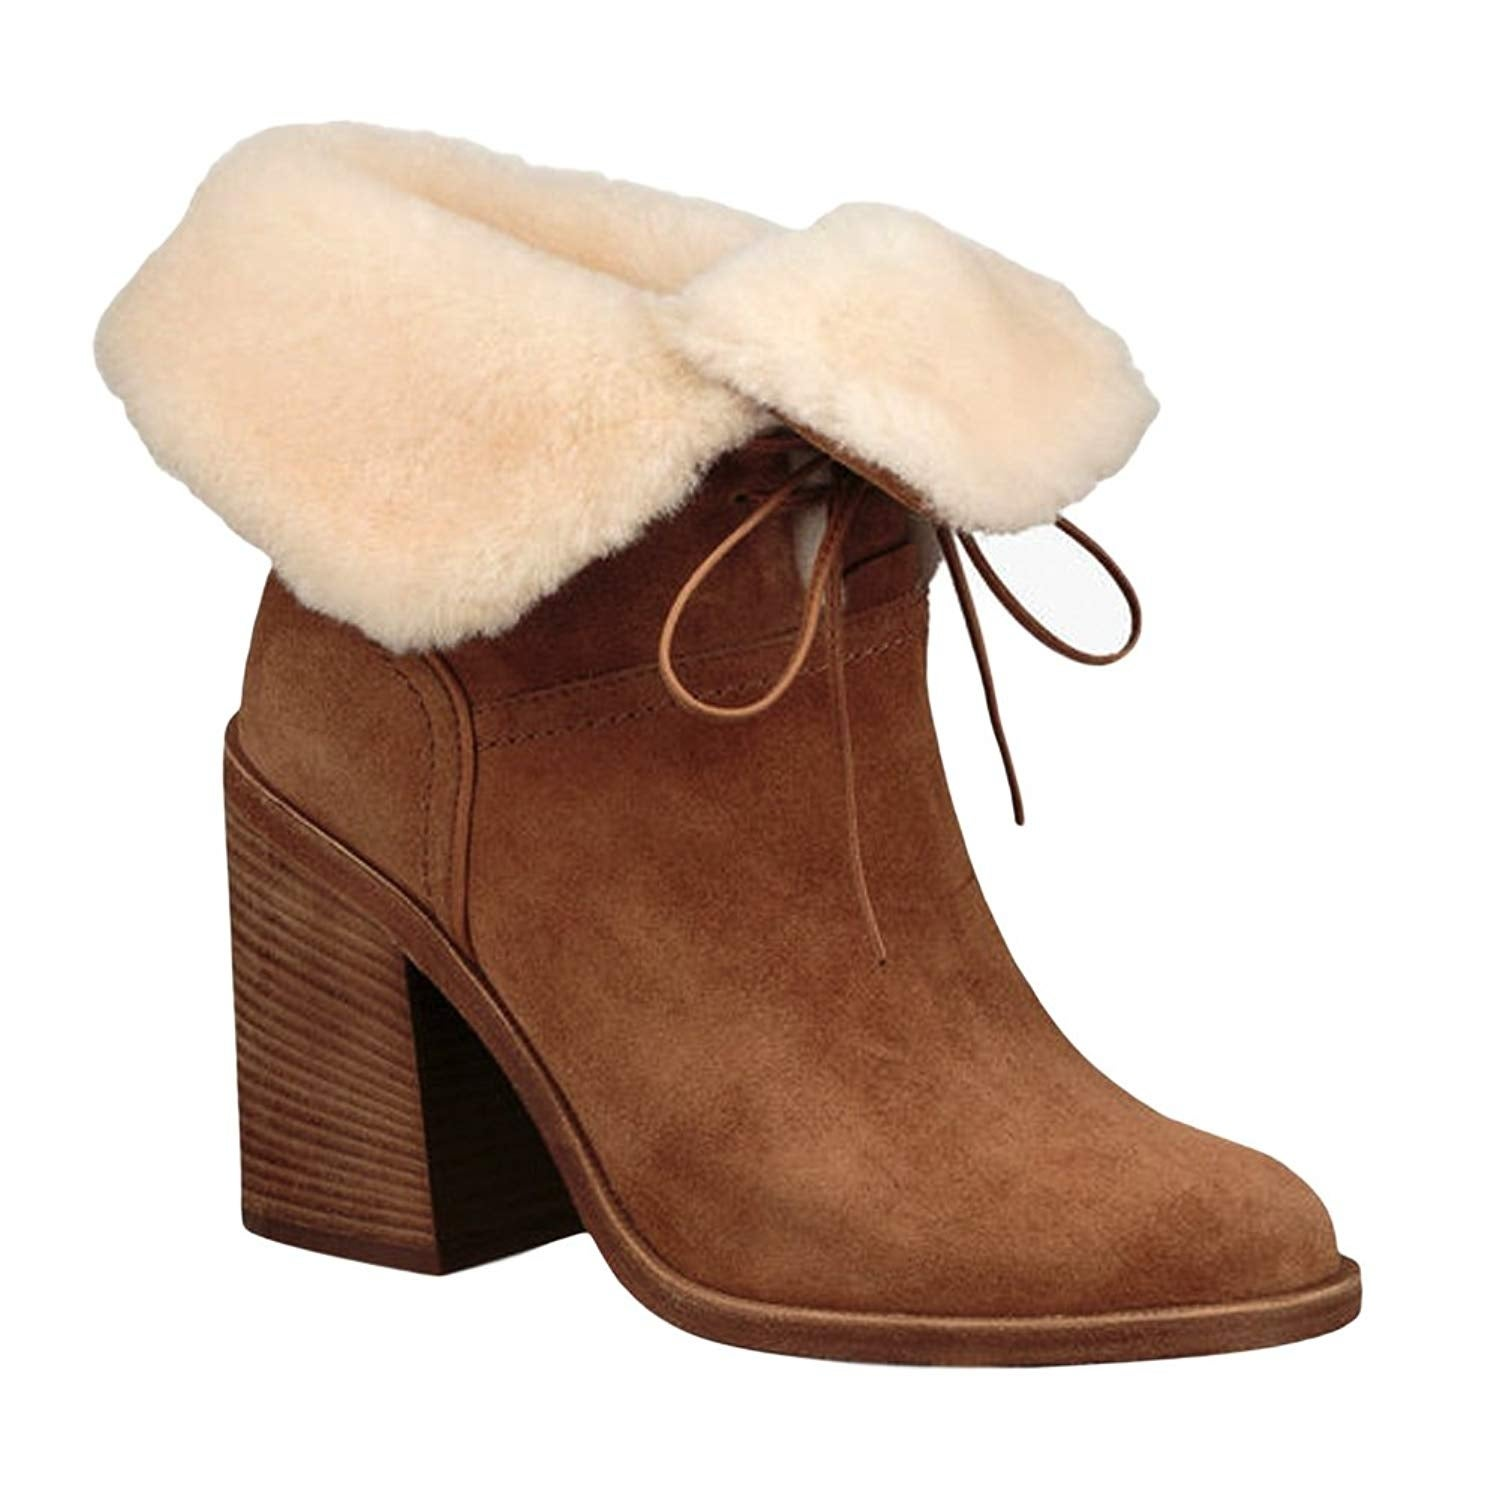 707500378be Shop Ugg Womens Jerene Closed Toe Ankle Cold Weather Boots - Free Shipping  Today - Overstock - 22967444